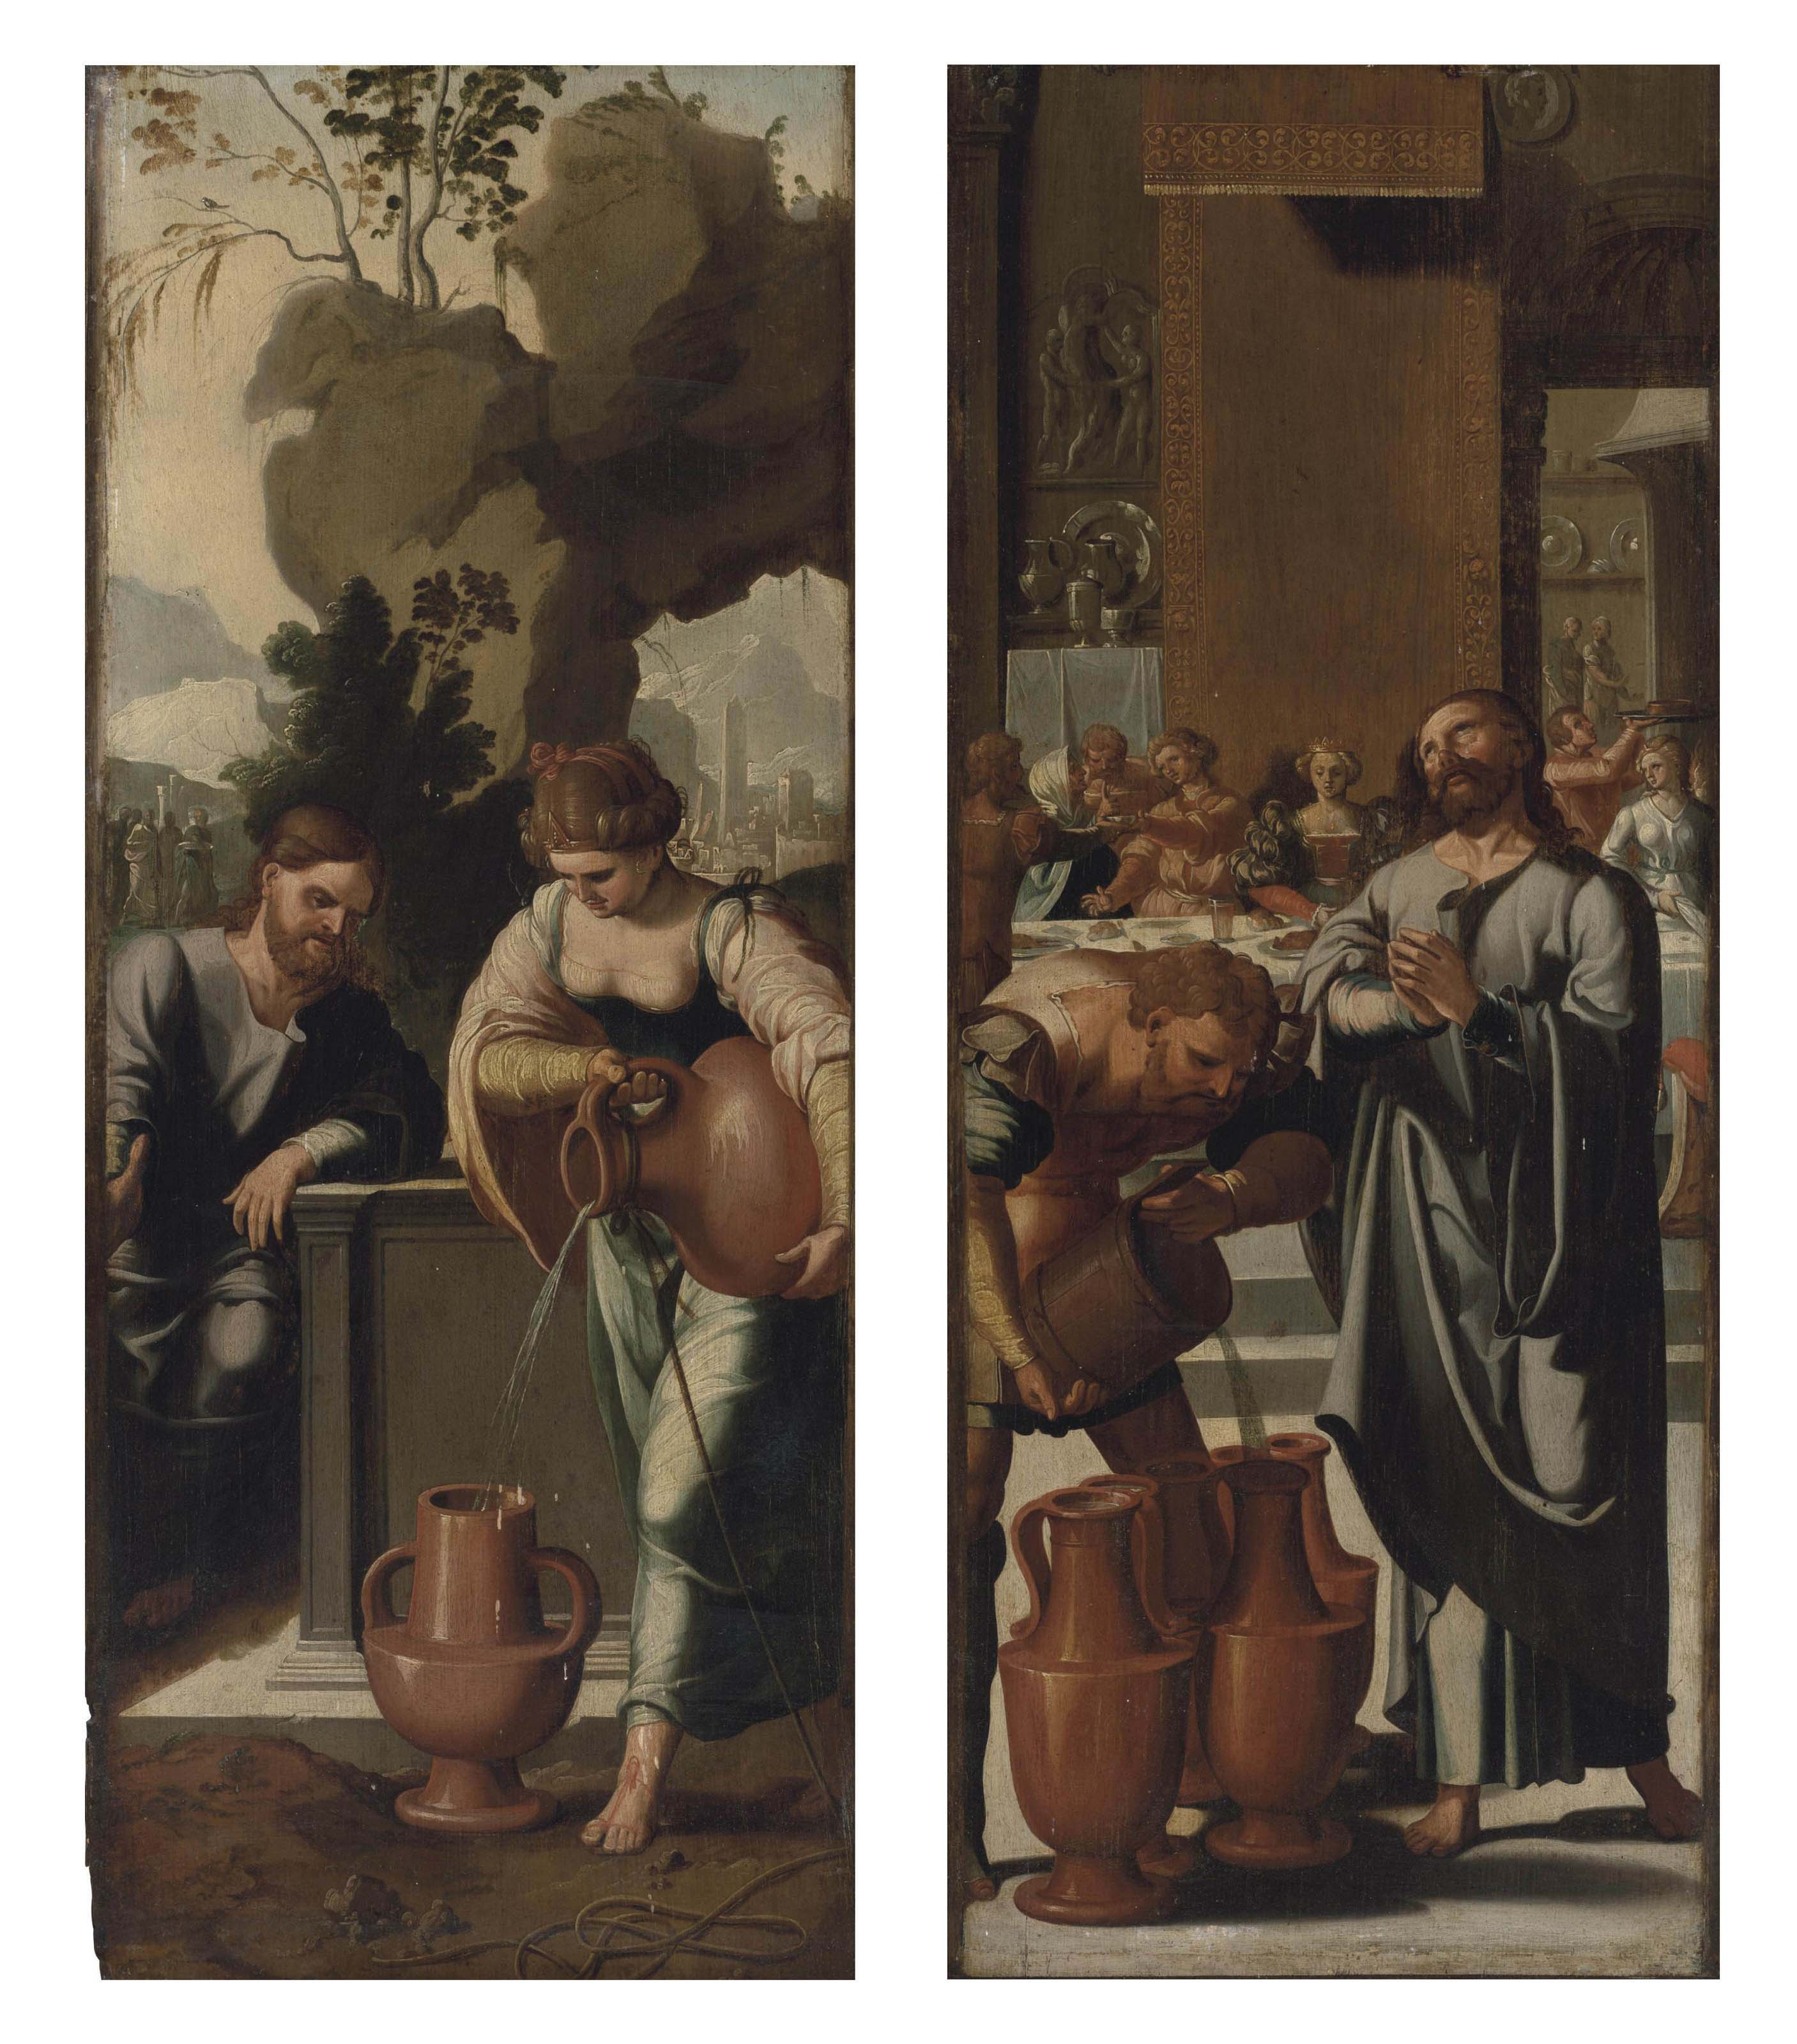 Christ and the Woman of Samaria at the Well; and The Marriage at Cana - panels from a polyptych